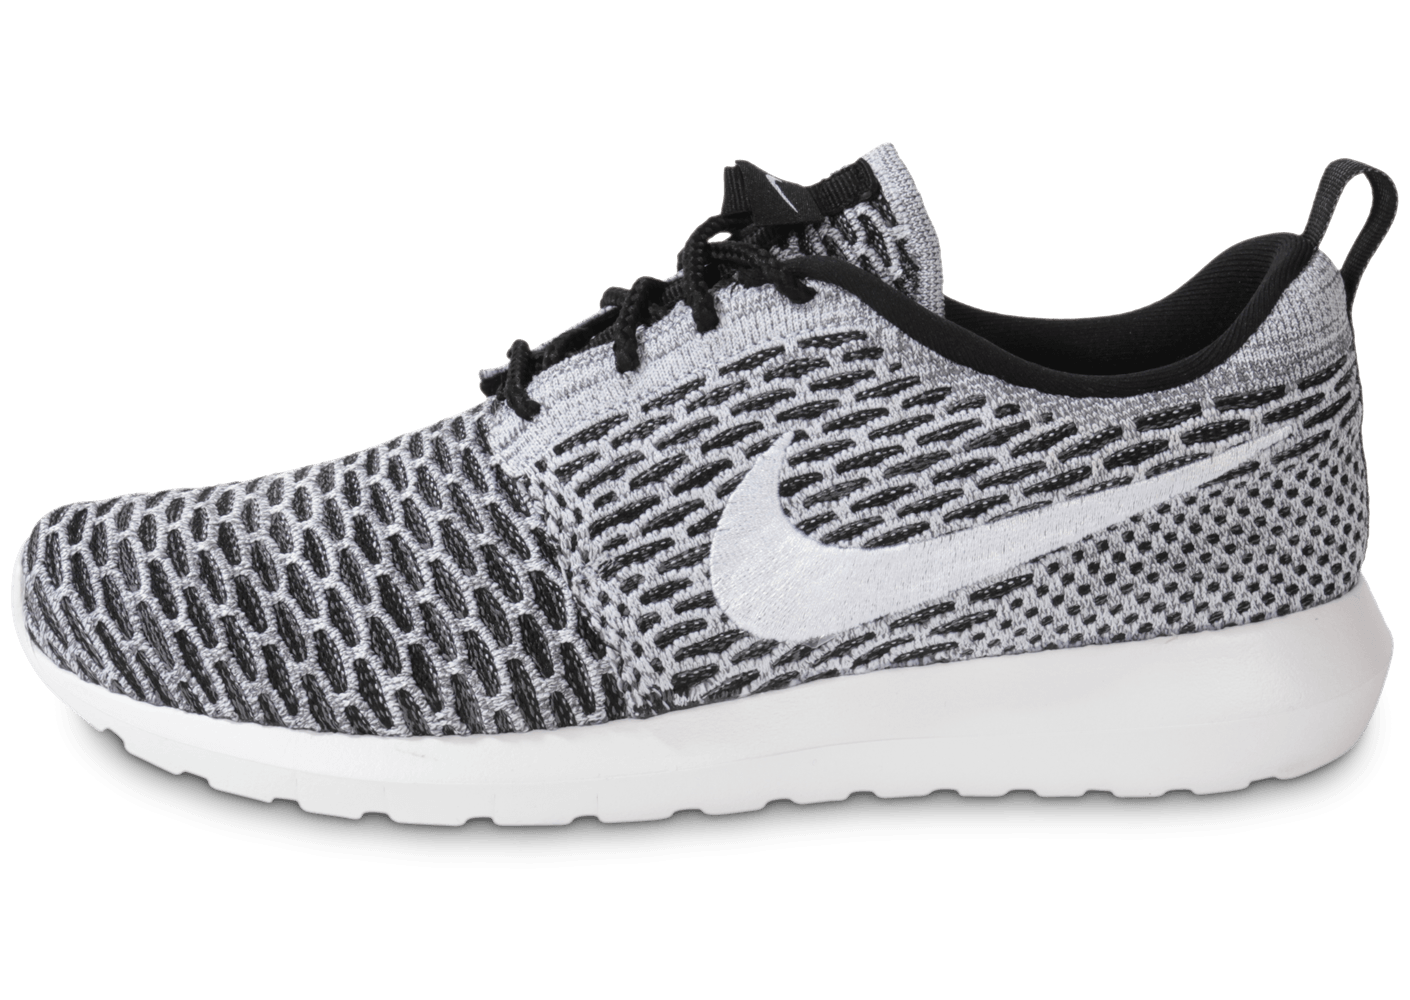 Nike ROSHE RUN FLYKNIT NOIRE - Chaussures Homme - Chausport